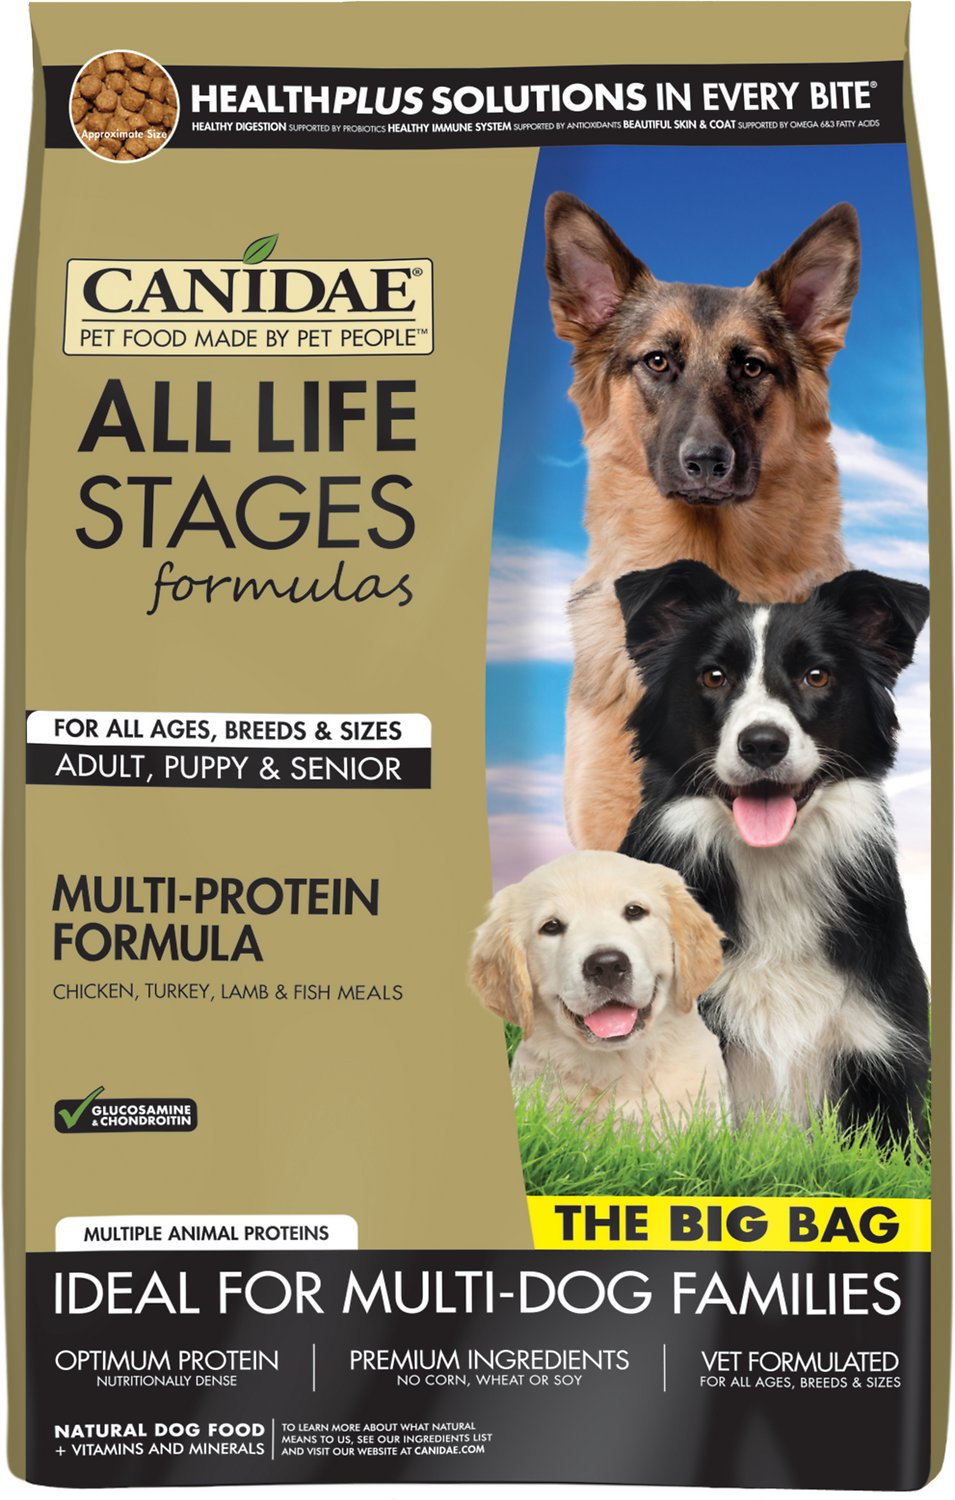 Canidae Dog Food Reviews >> Canidae All Life Stages Dog Food Review Australian Dog Lover